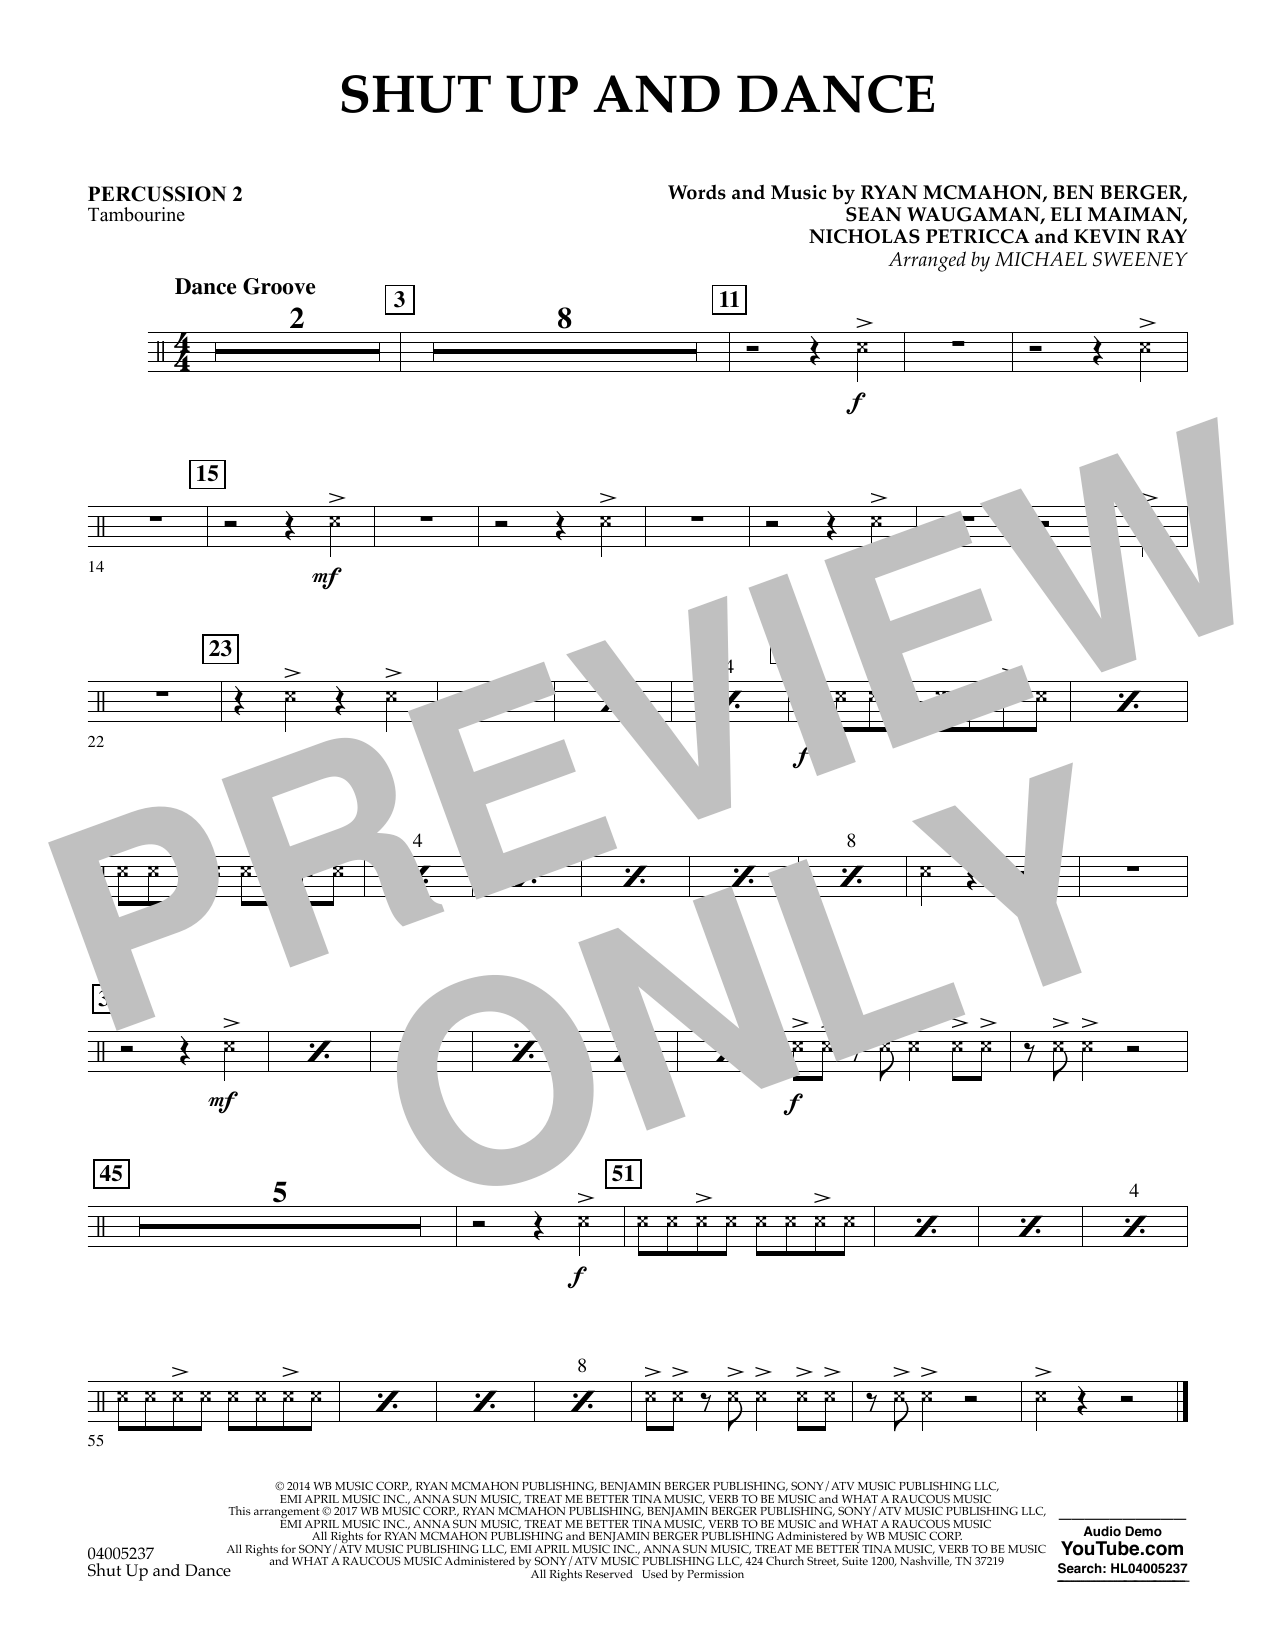 Shut Up and Dance - Percussion 2 (Concert Band)